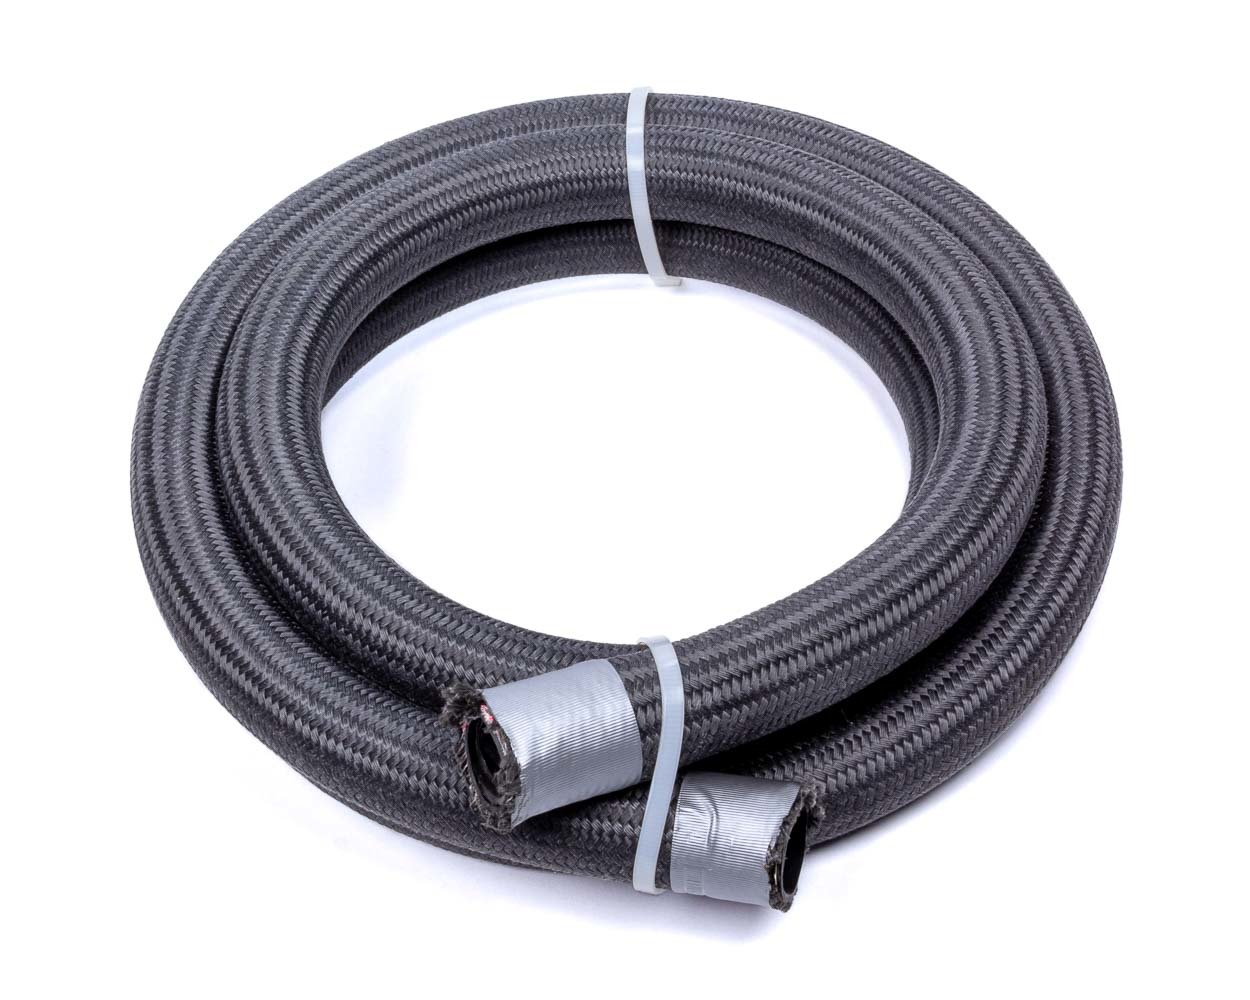 Fragola 2700312 Hose, Race-Rite, 12 AN, 3 ft, Braided Fire Retardant Fabric, PTFE, Black, Each